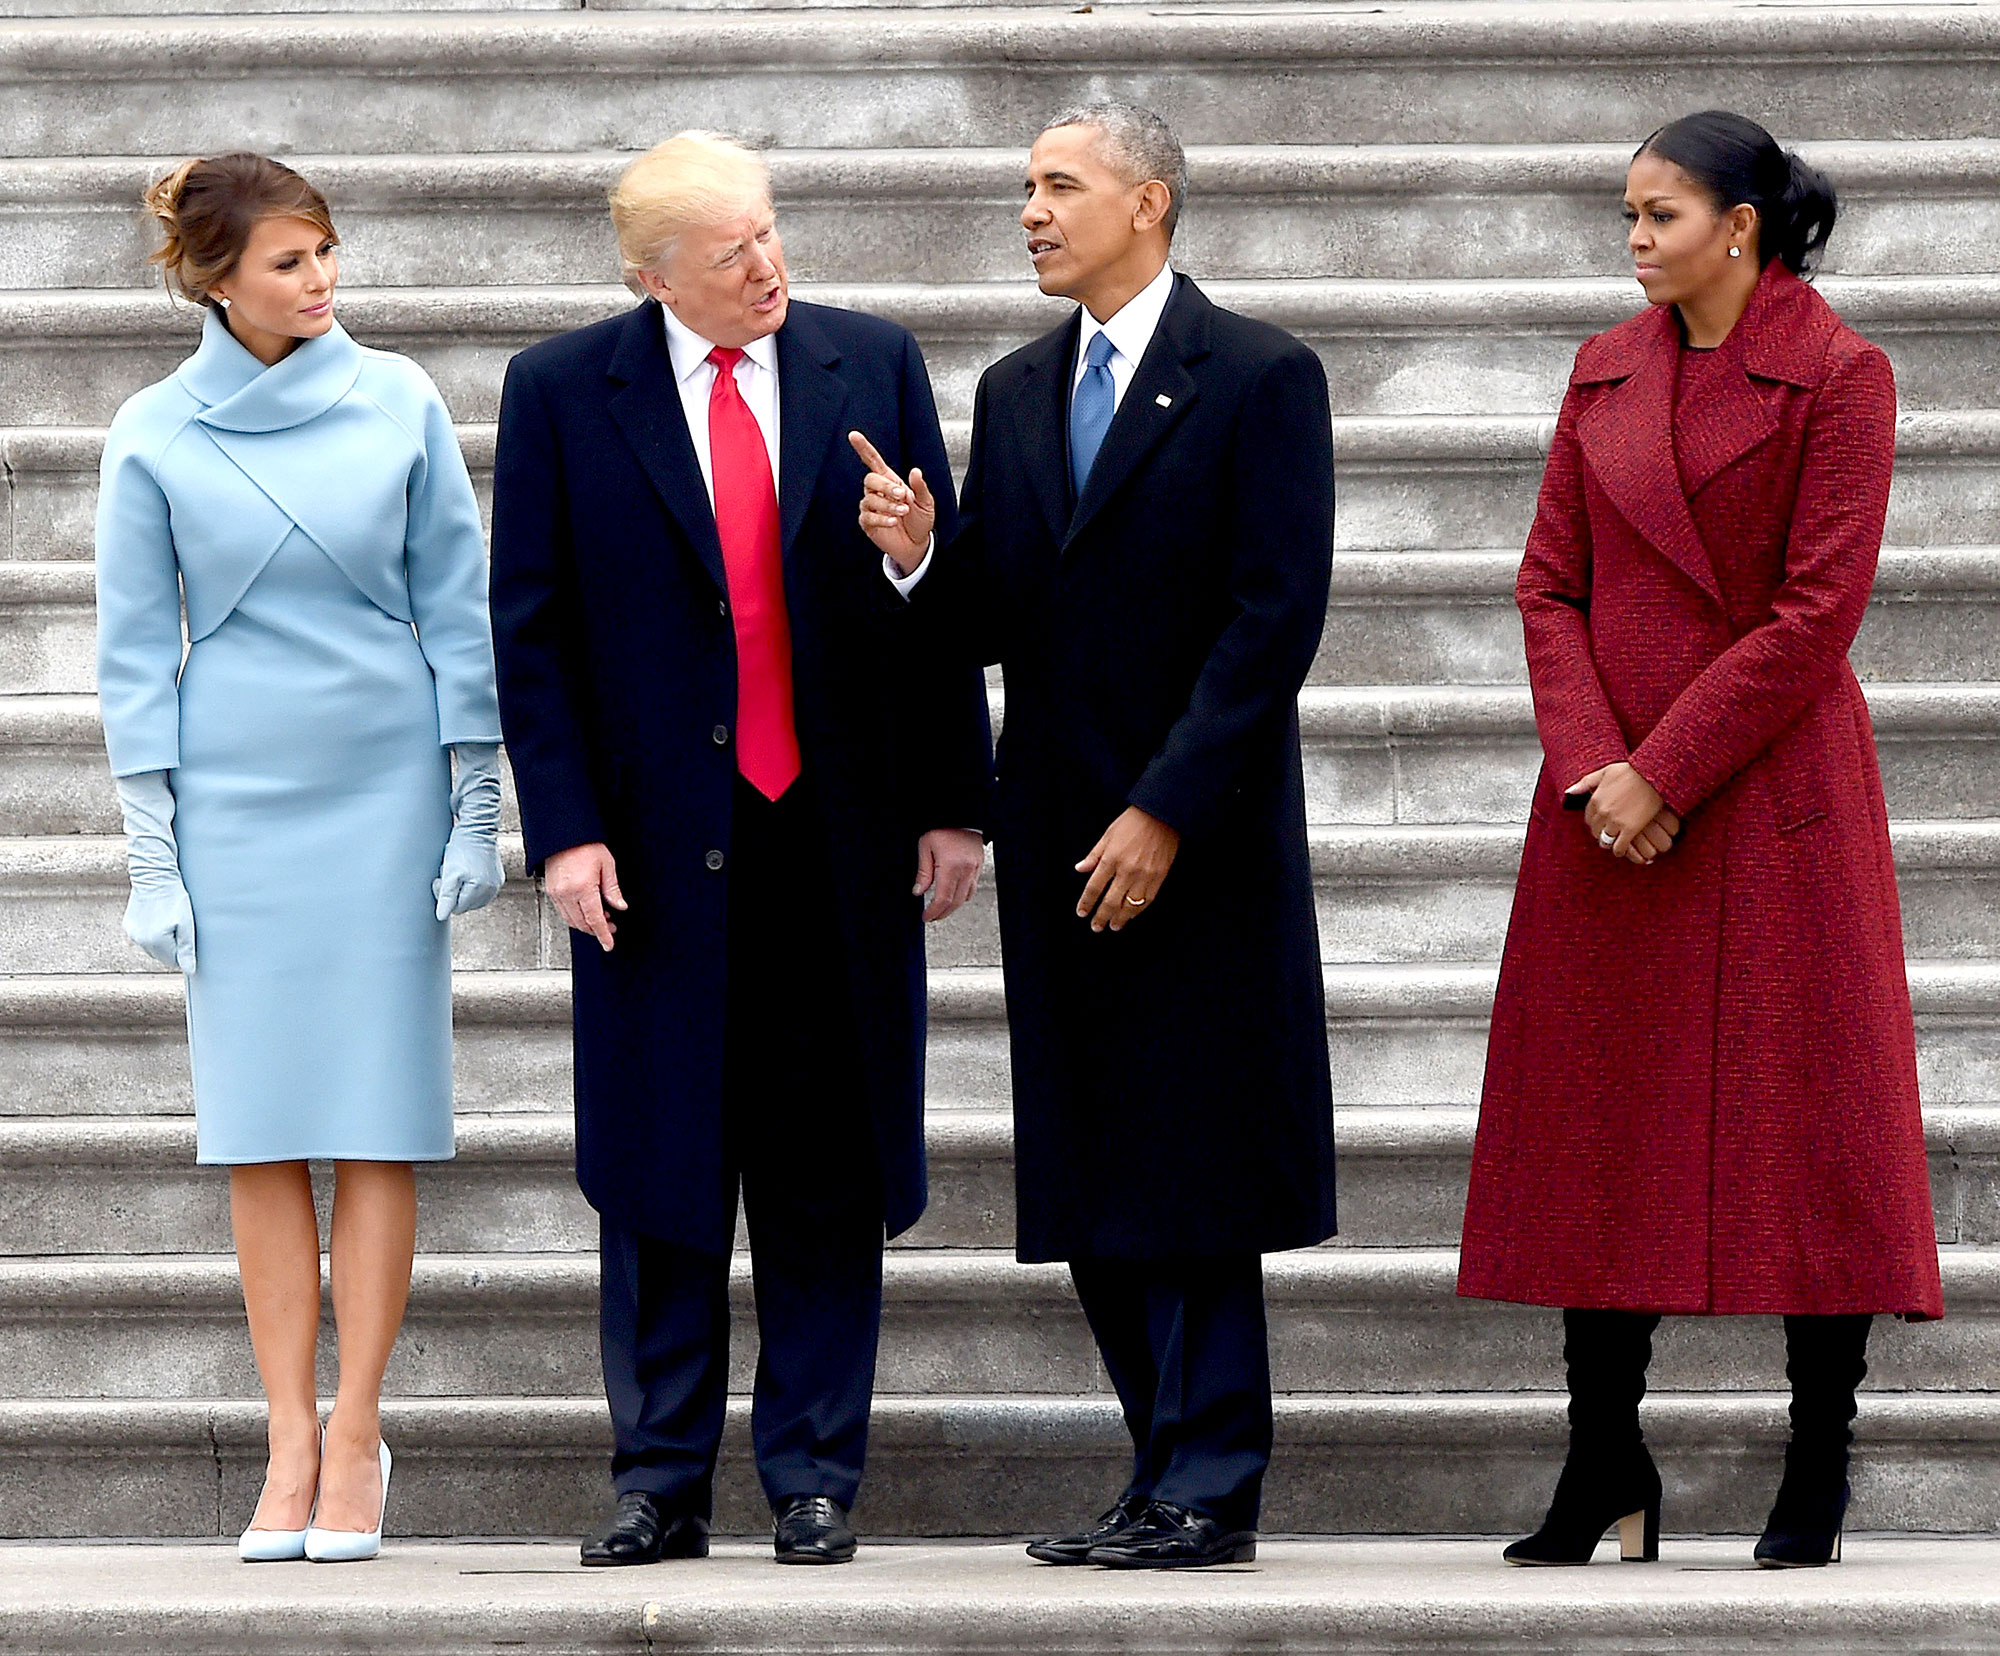 First Lady Melania Trump, President Donald Trump, former president Barack Obama and Michelle Obama stand on the steps on the east side of the United States Capitol after the inauguration ceremony on January 20, 2017, in Washington, DC.